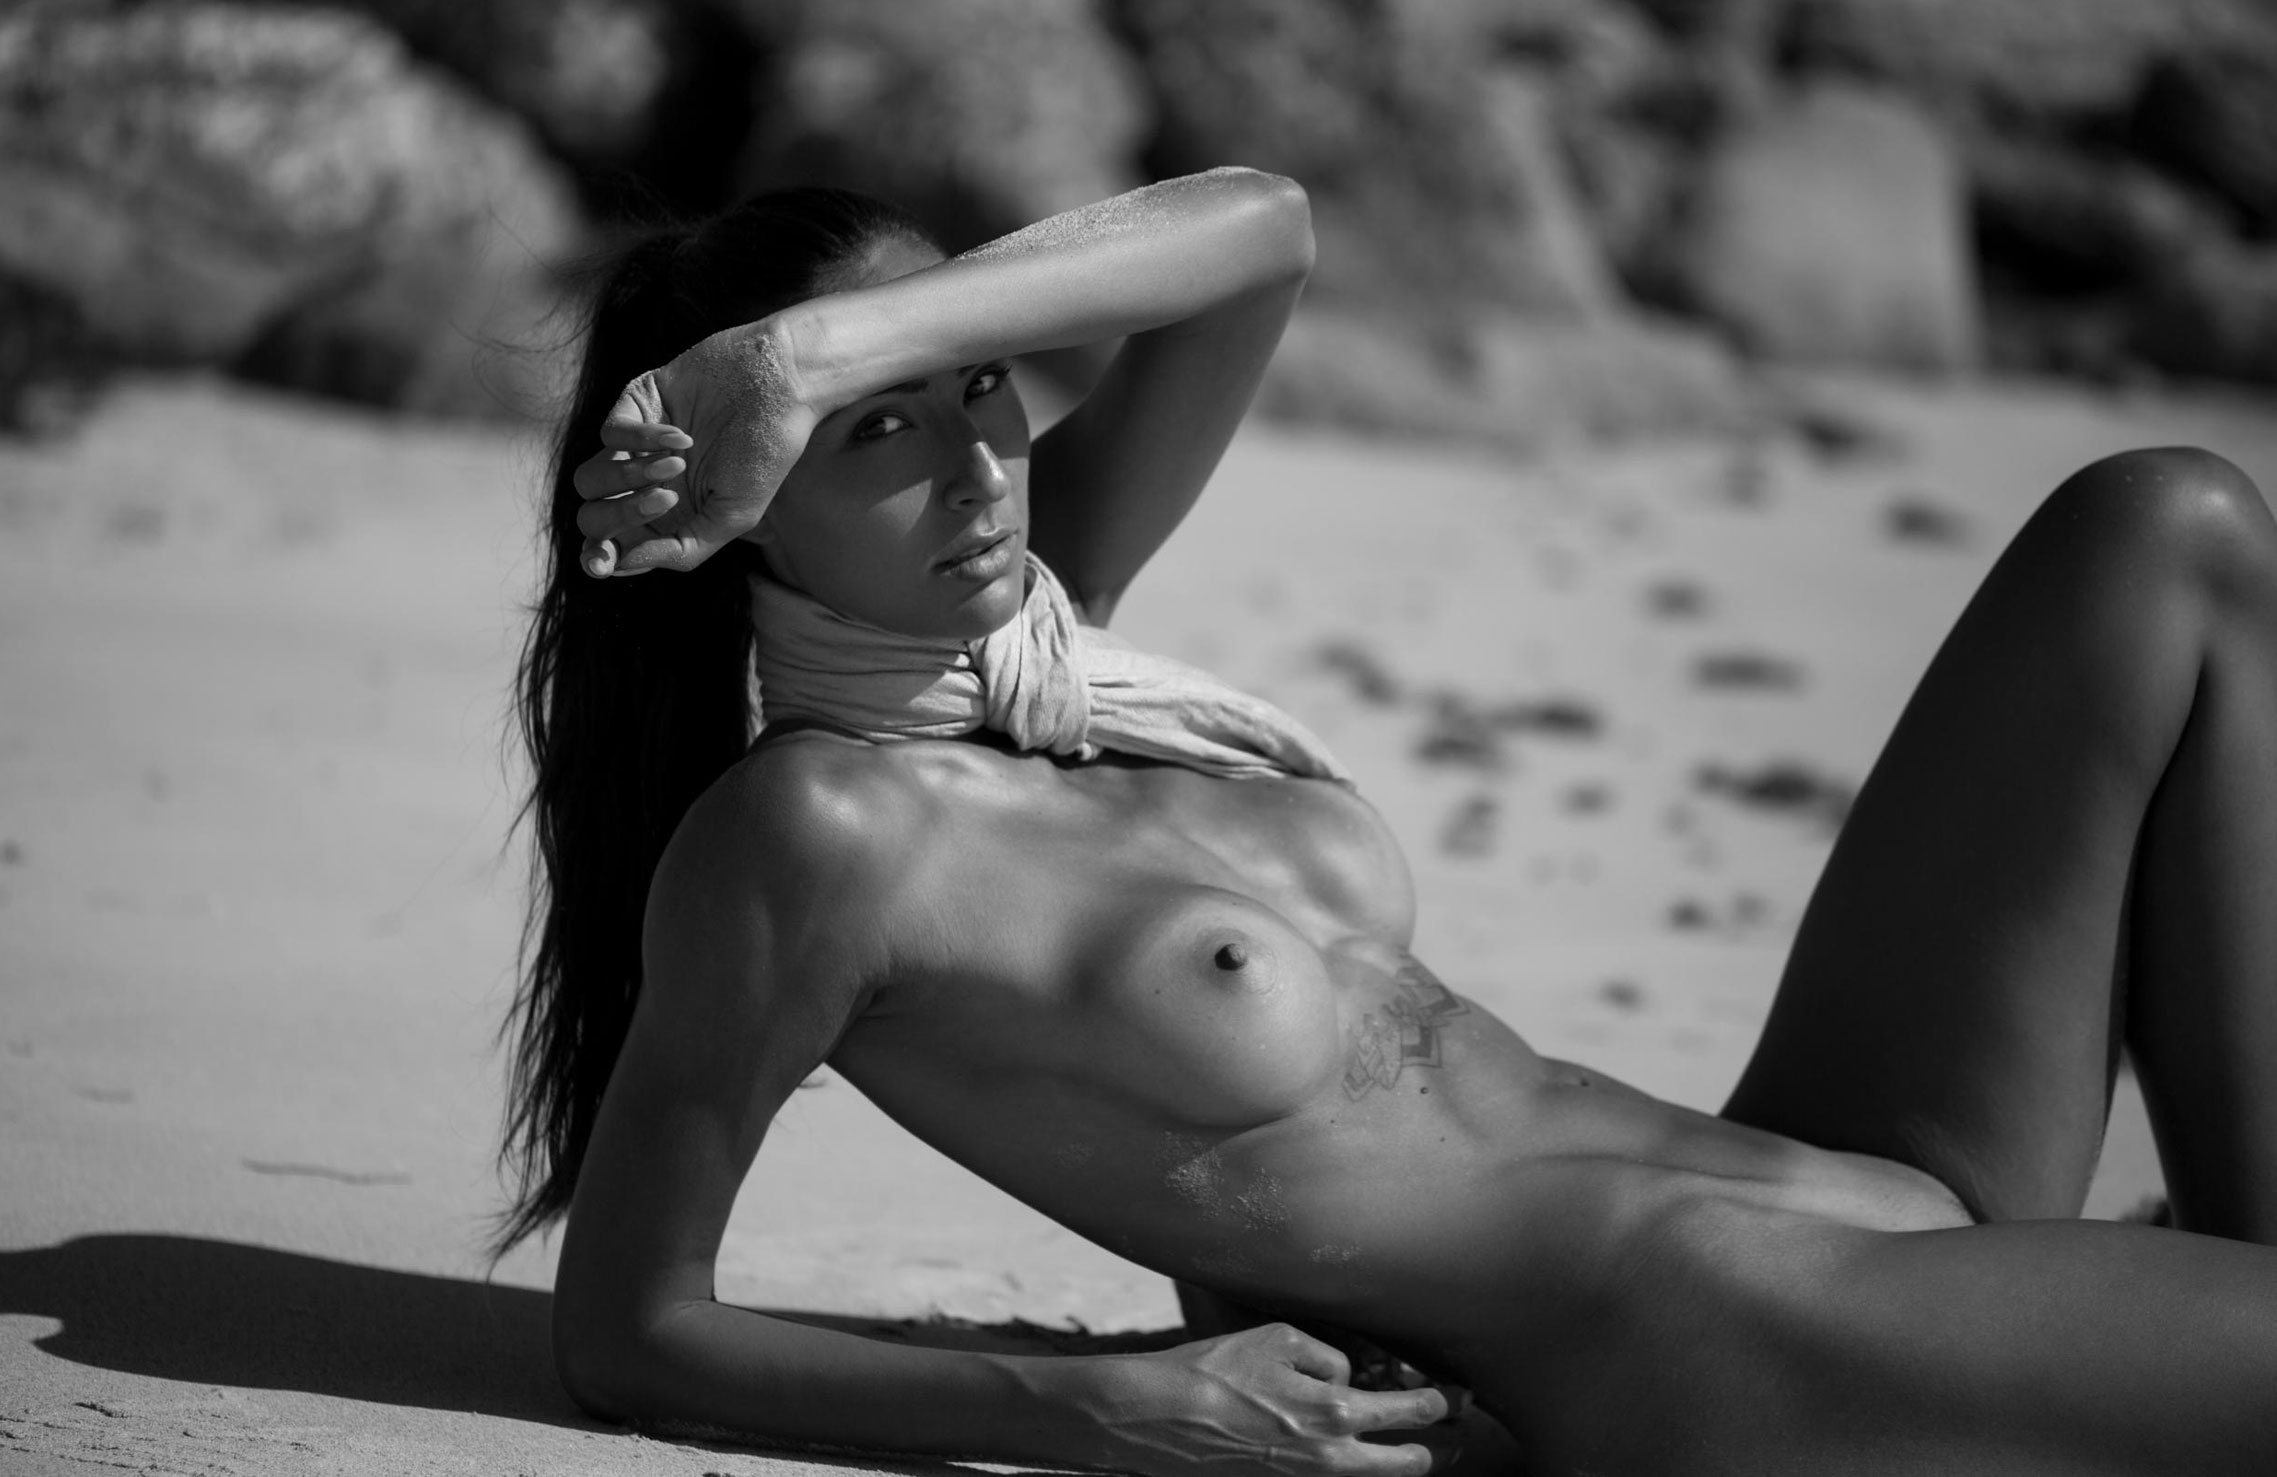 Isidora Madzarevic nude by James Felix - Volo number 54 october 2017